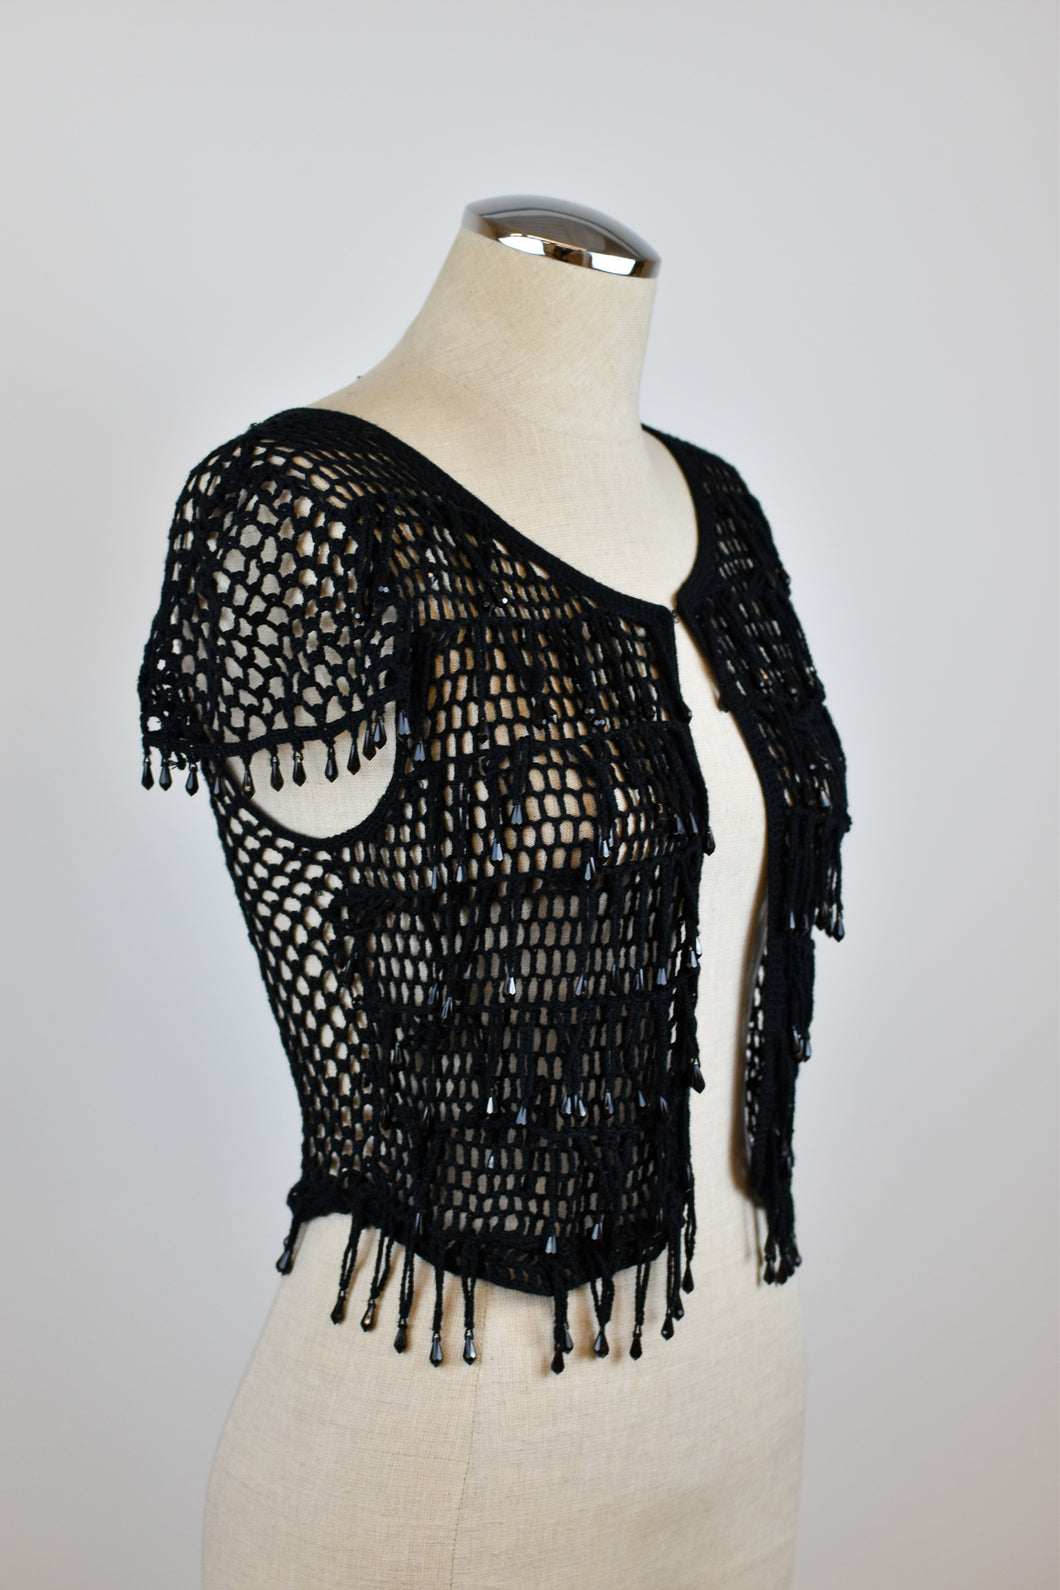 Y2K | Anna Sui for Victoria's Secret | Open Knit Top with Beading